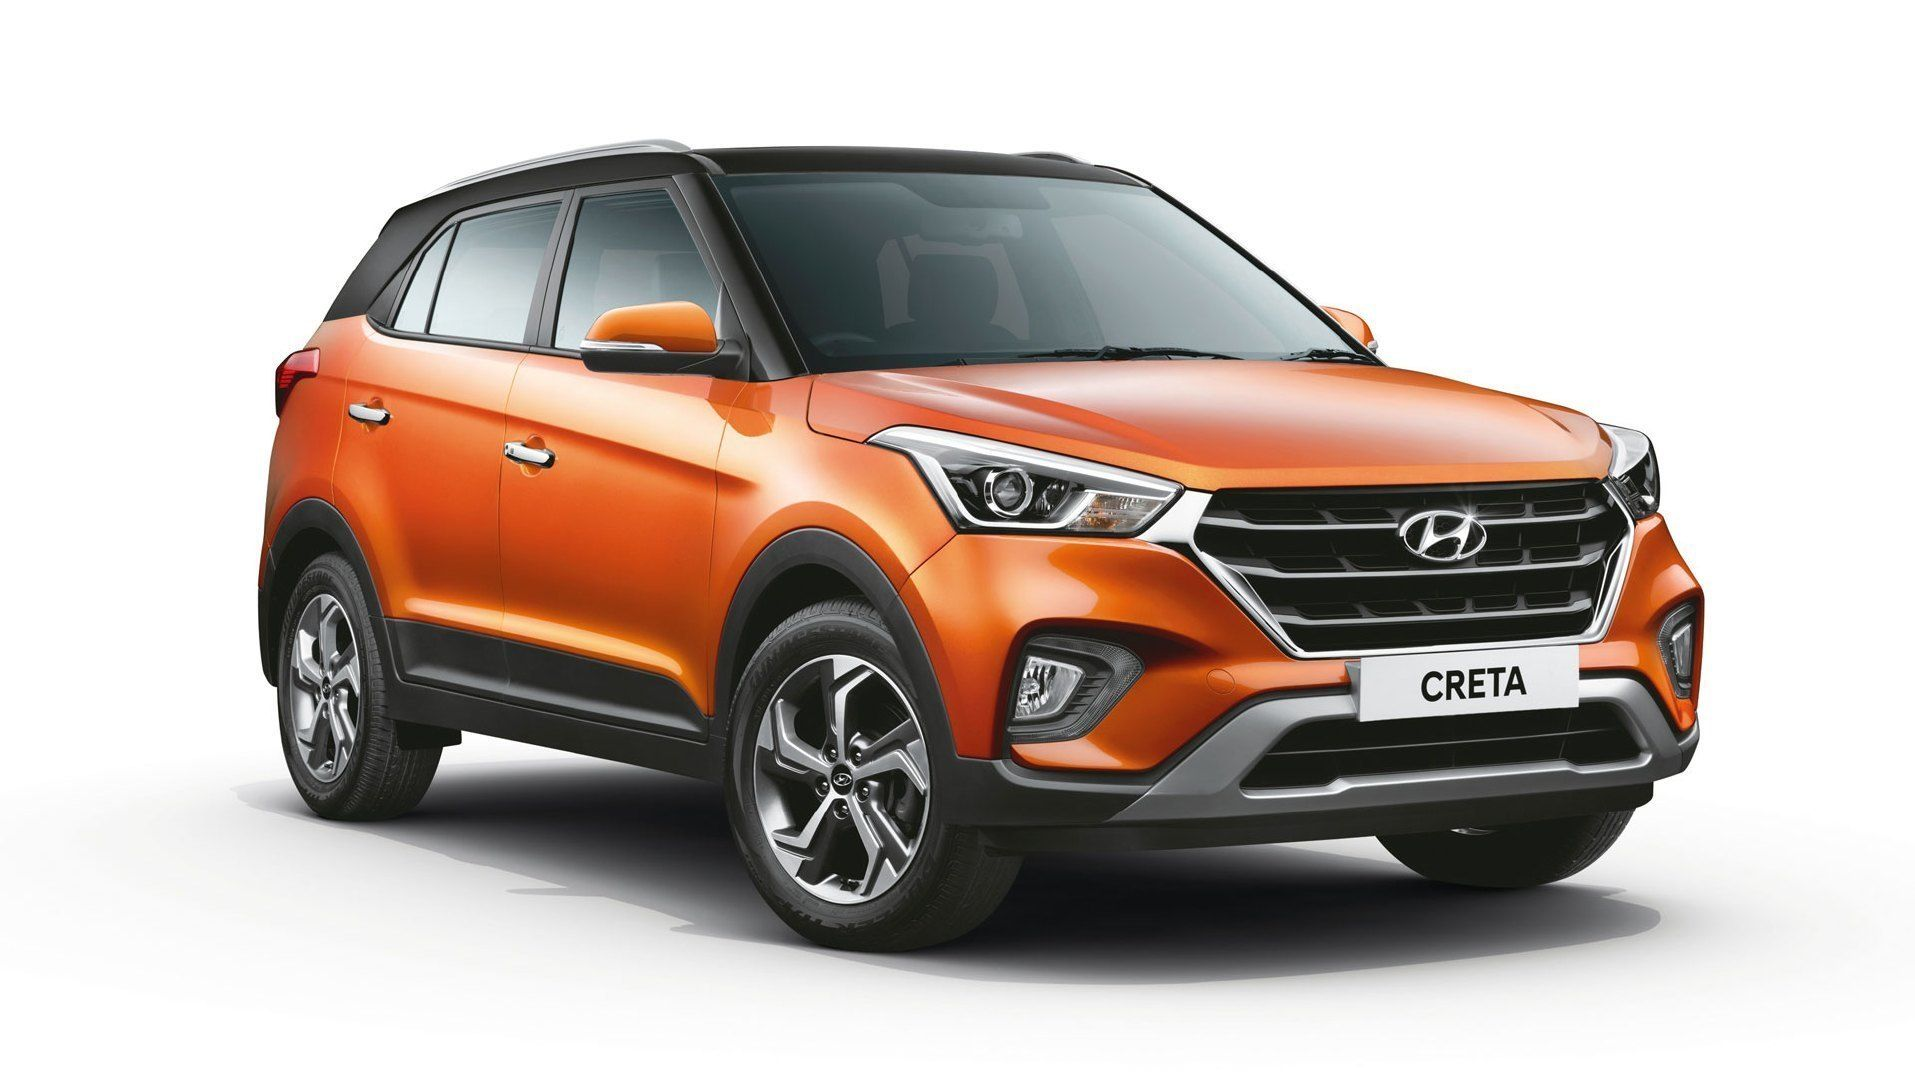 A Unique Collection Of Car Accessories For They Hyundai Creta By Installing These Accessories You Can Improve You Car Lo Hyundai Cars New Hyundai Cars Hyundai